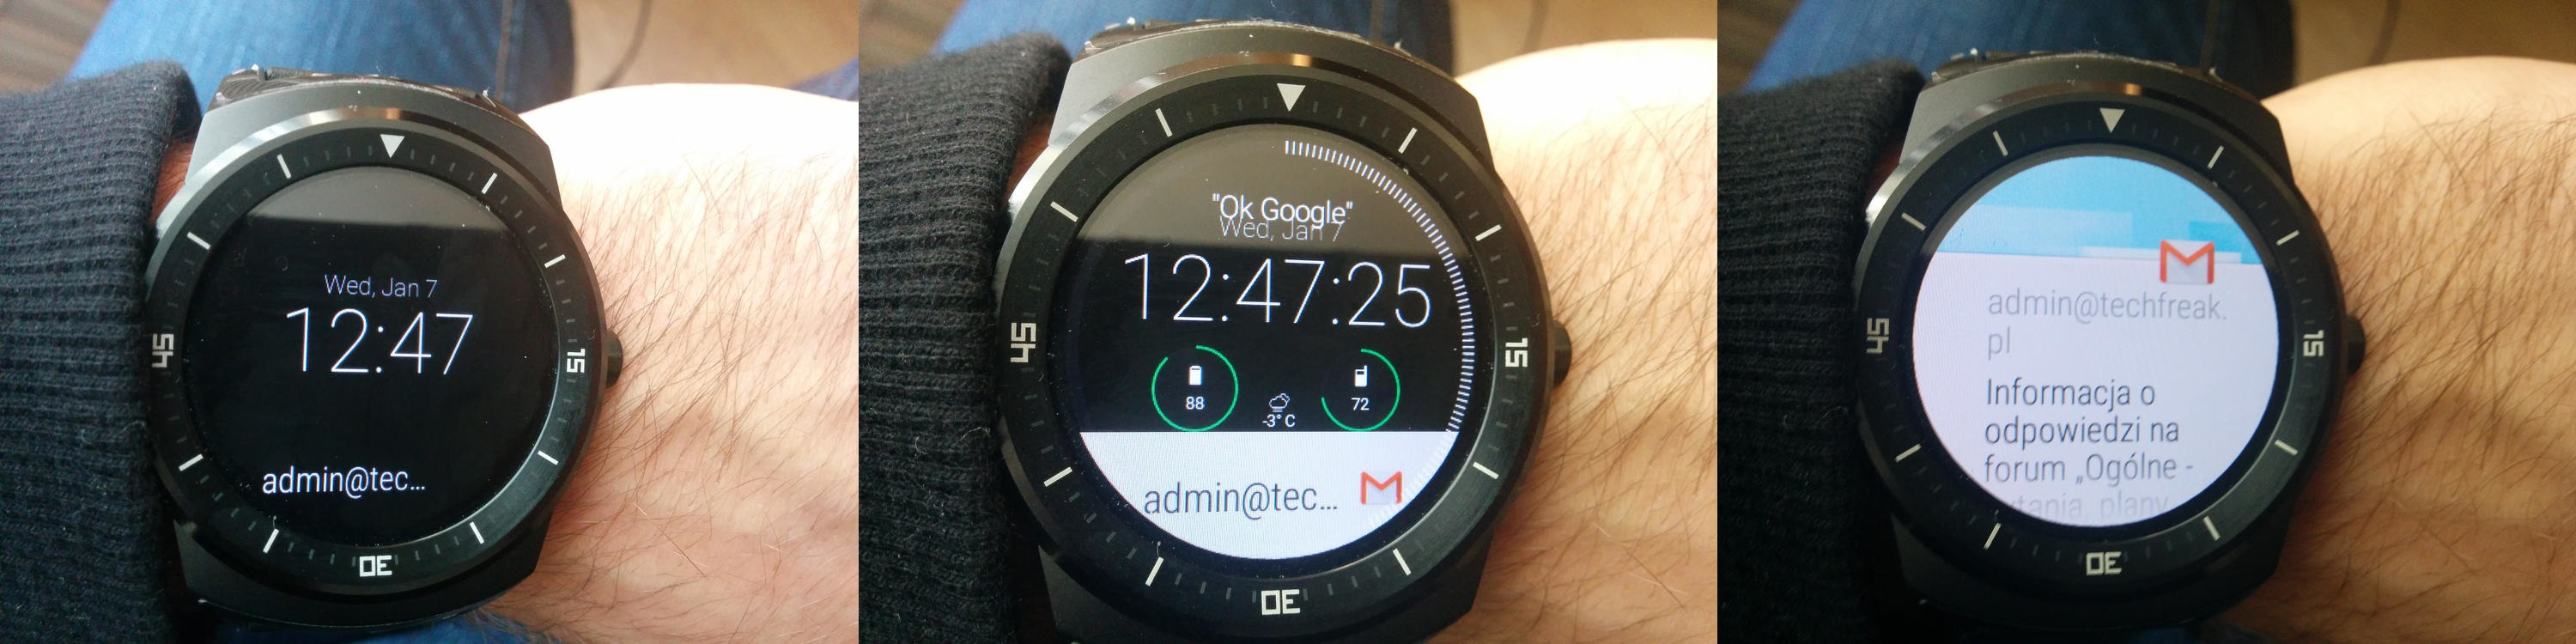 lg_g_watch_r_gmail